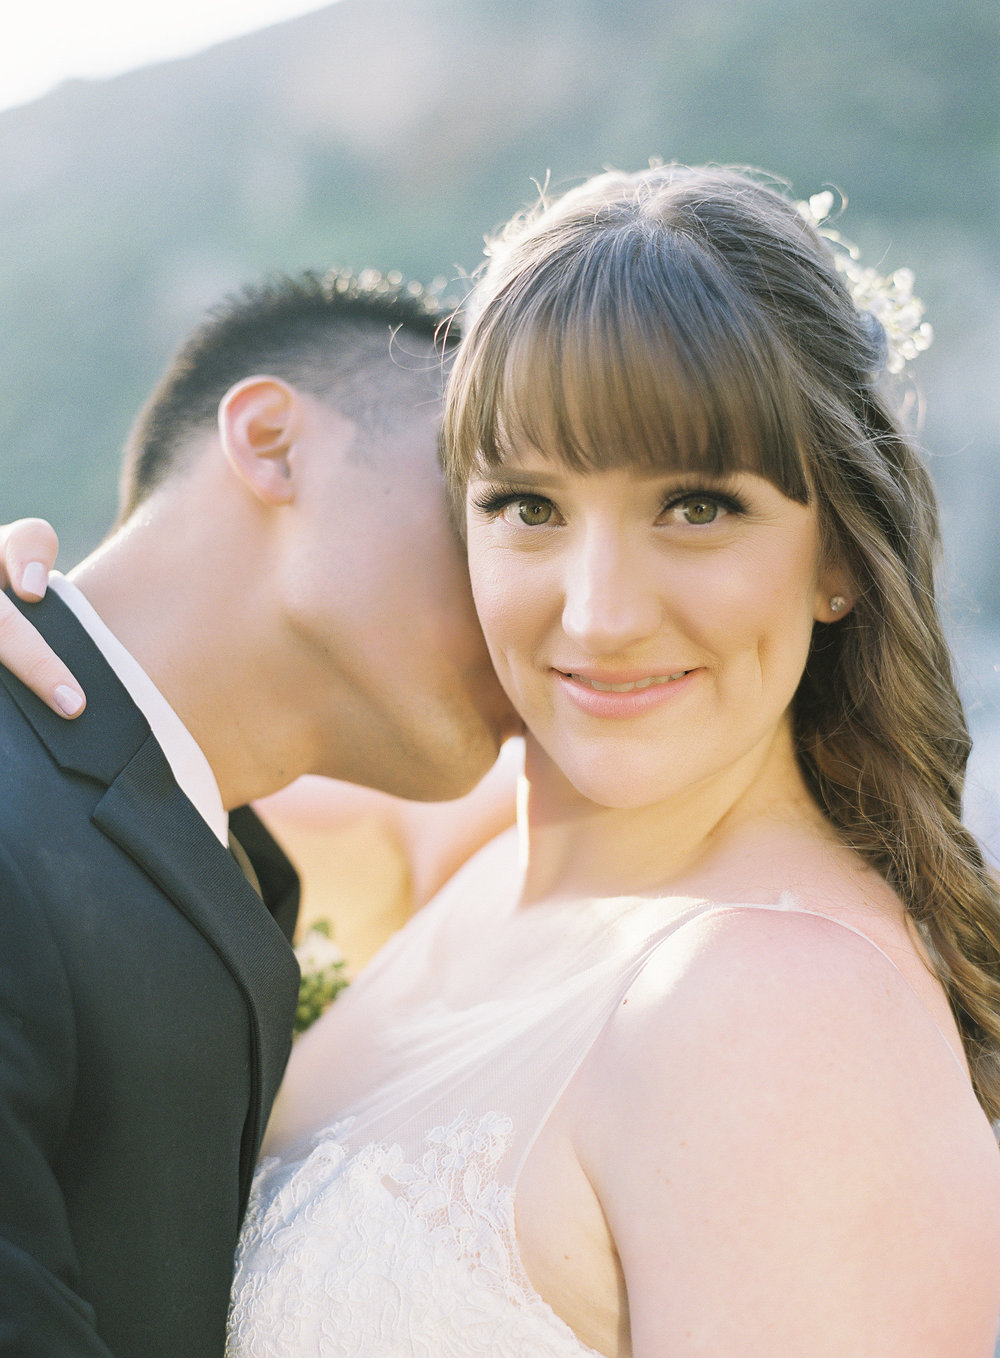 Brunette Bride with Bangs and Hair Down with Husband Kissing Neck. Wedding Hair and Makeup by Vanity Belle in Orange County (Costa Mesa) and San Diego (La Jolla)